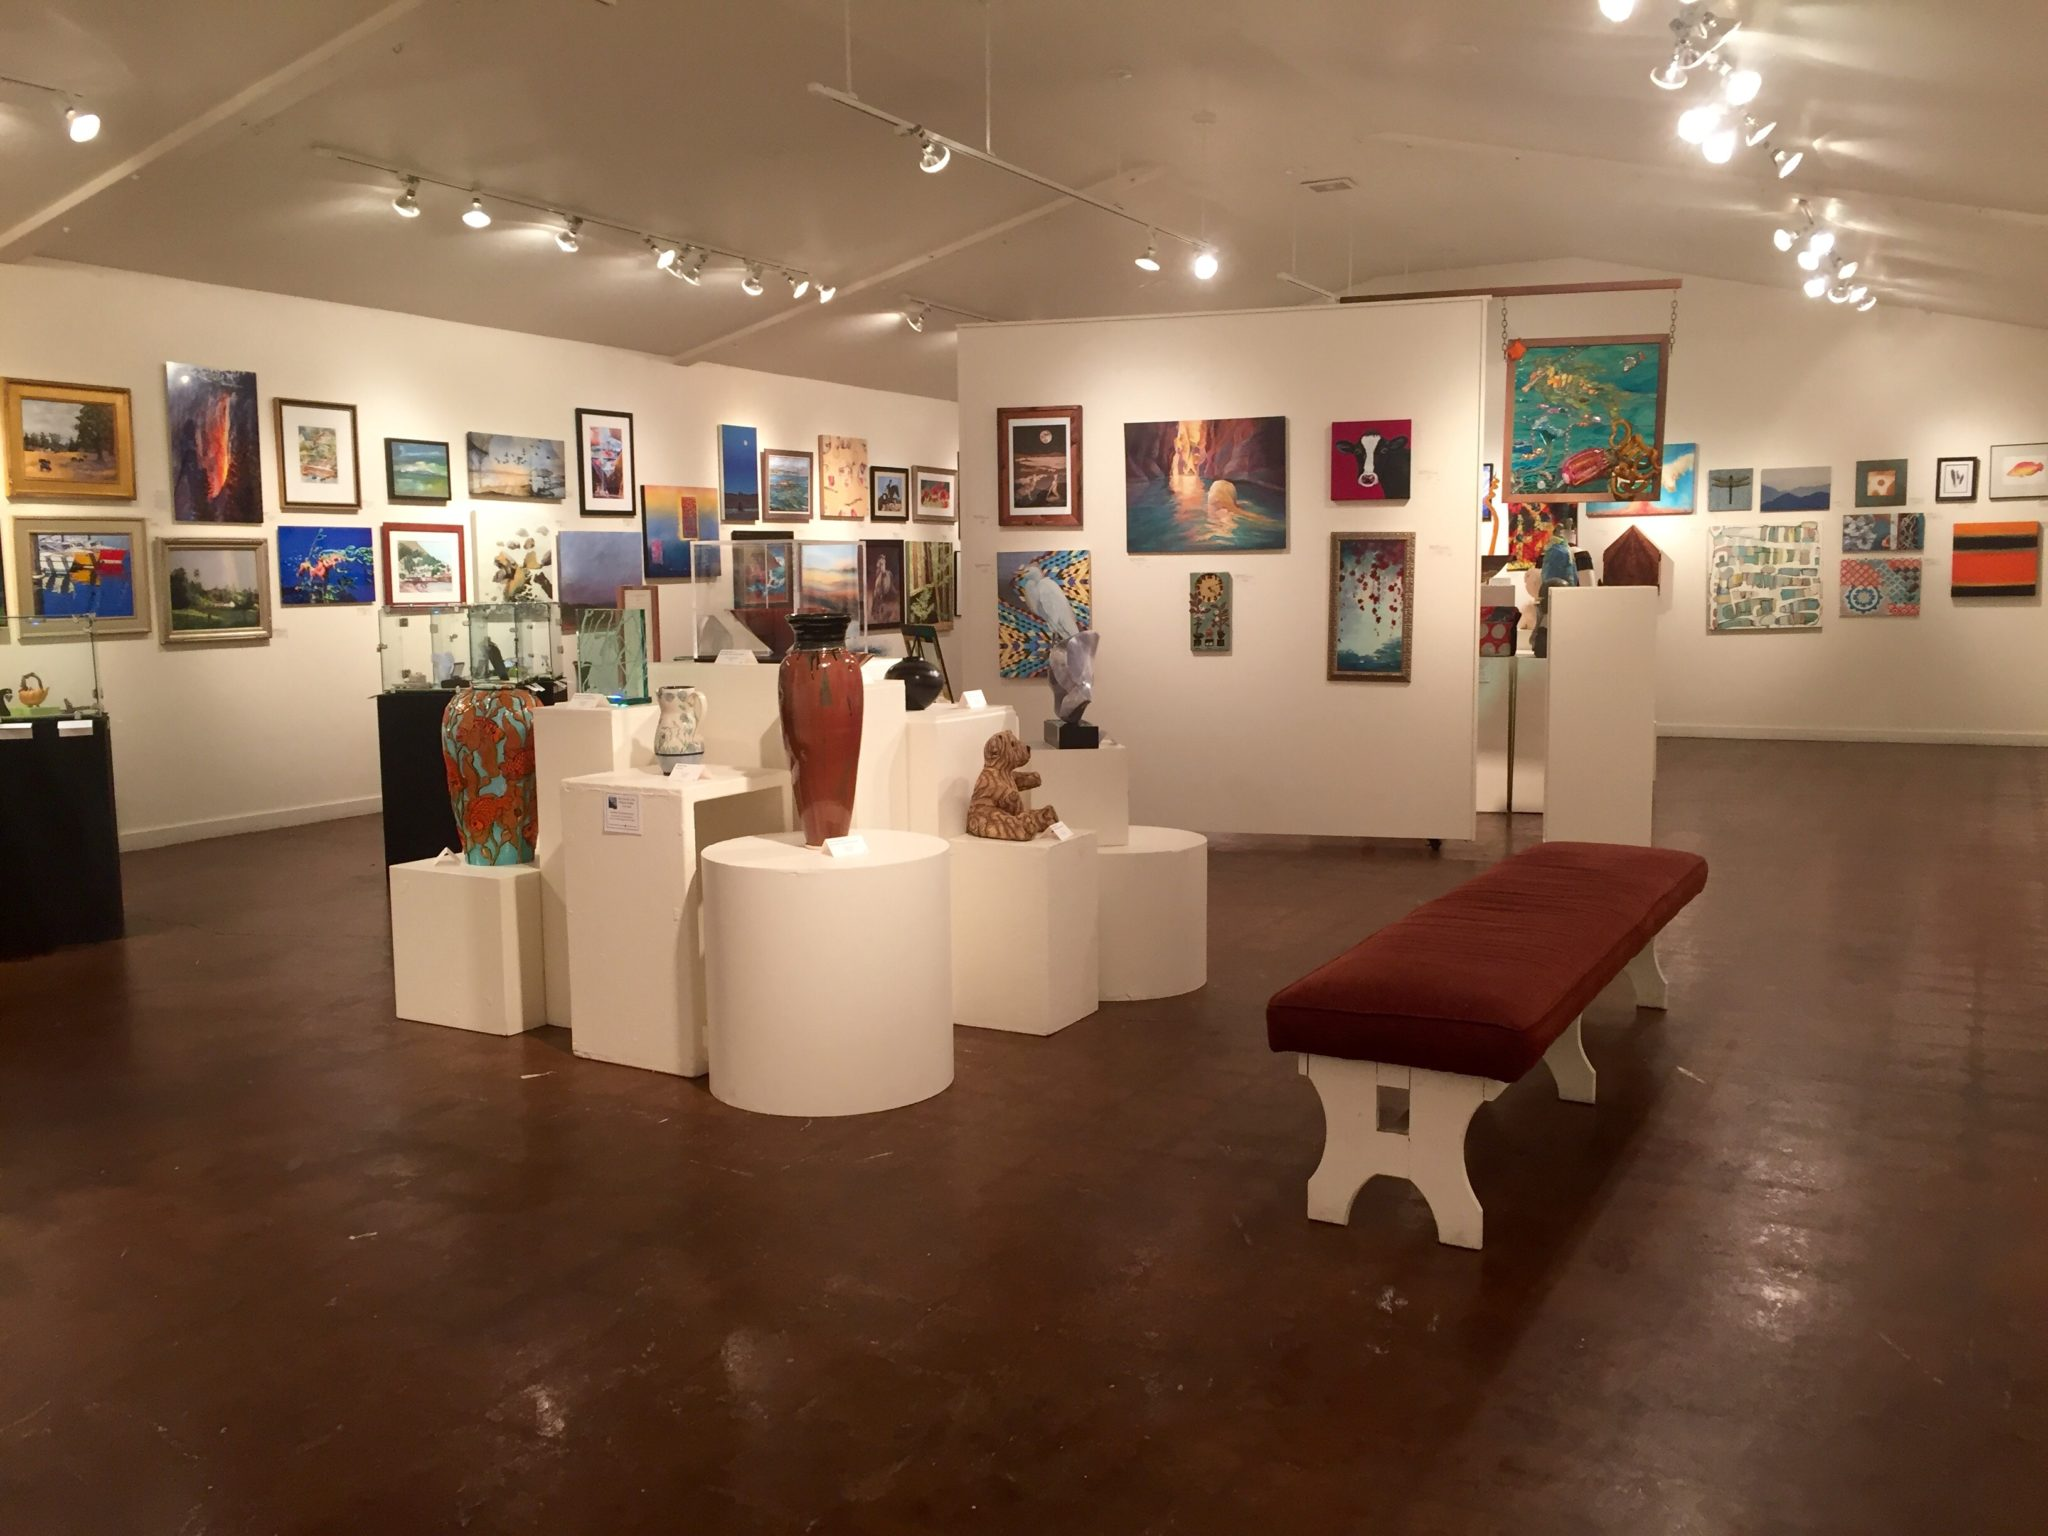 View samples from the entire tour at the Santa Cruz Art League Preview Exhibit, open until October 16, 2016.